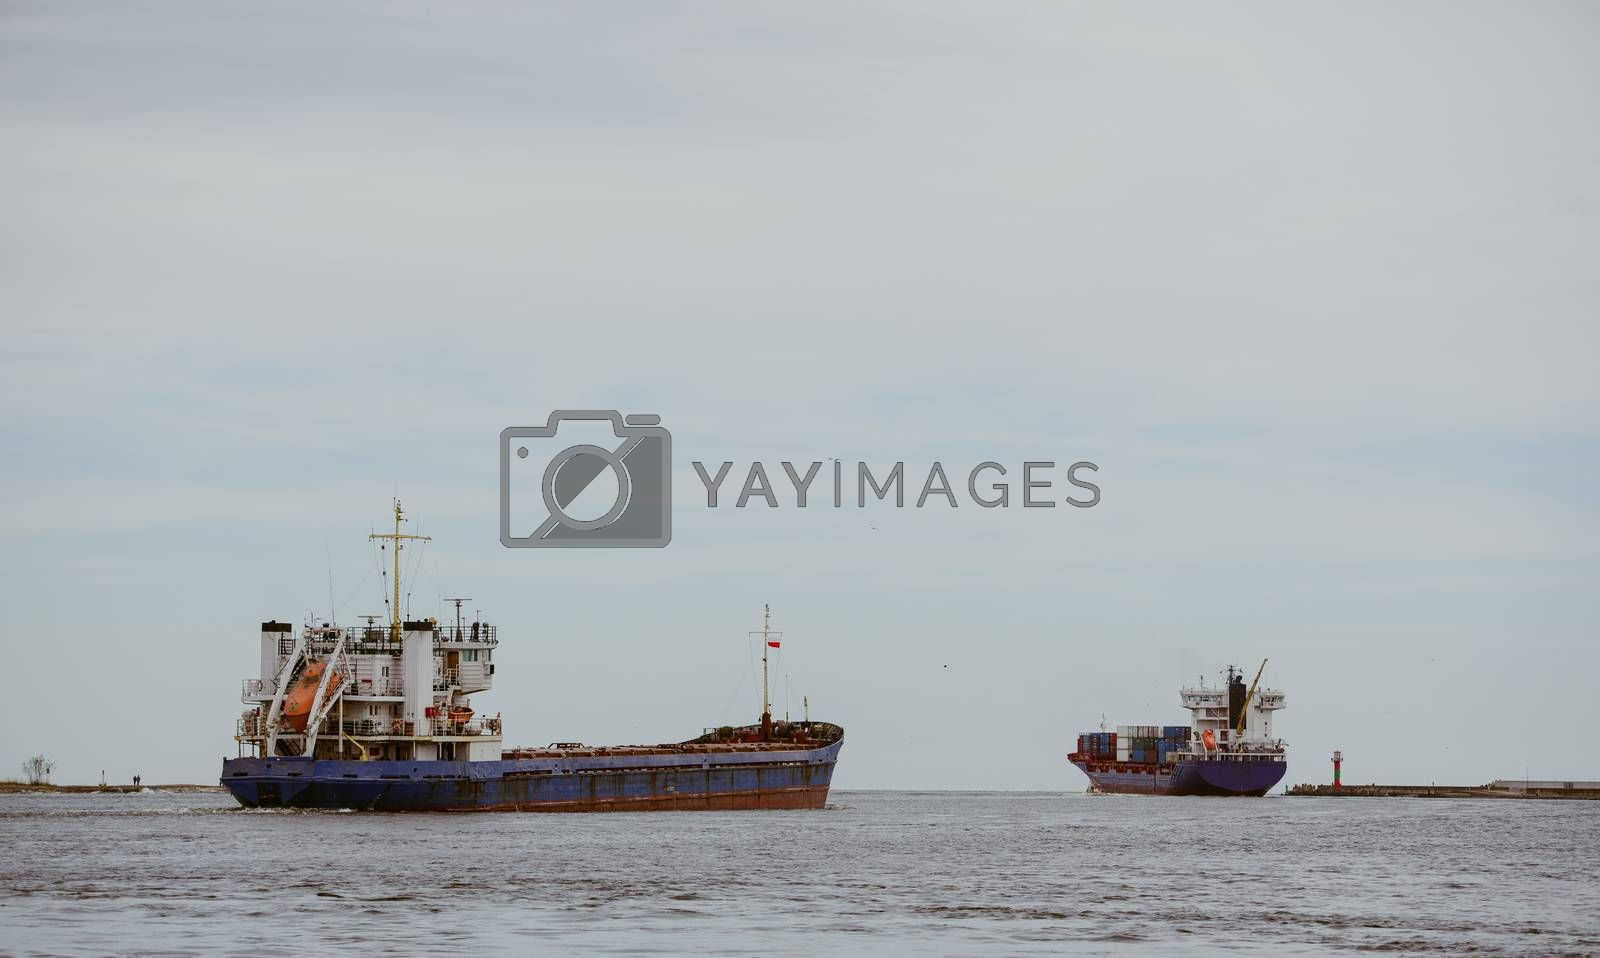 Transport vessels depart from the port to the open Baltic Sea by Brejeq